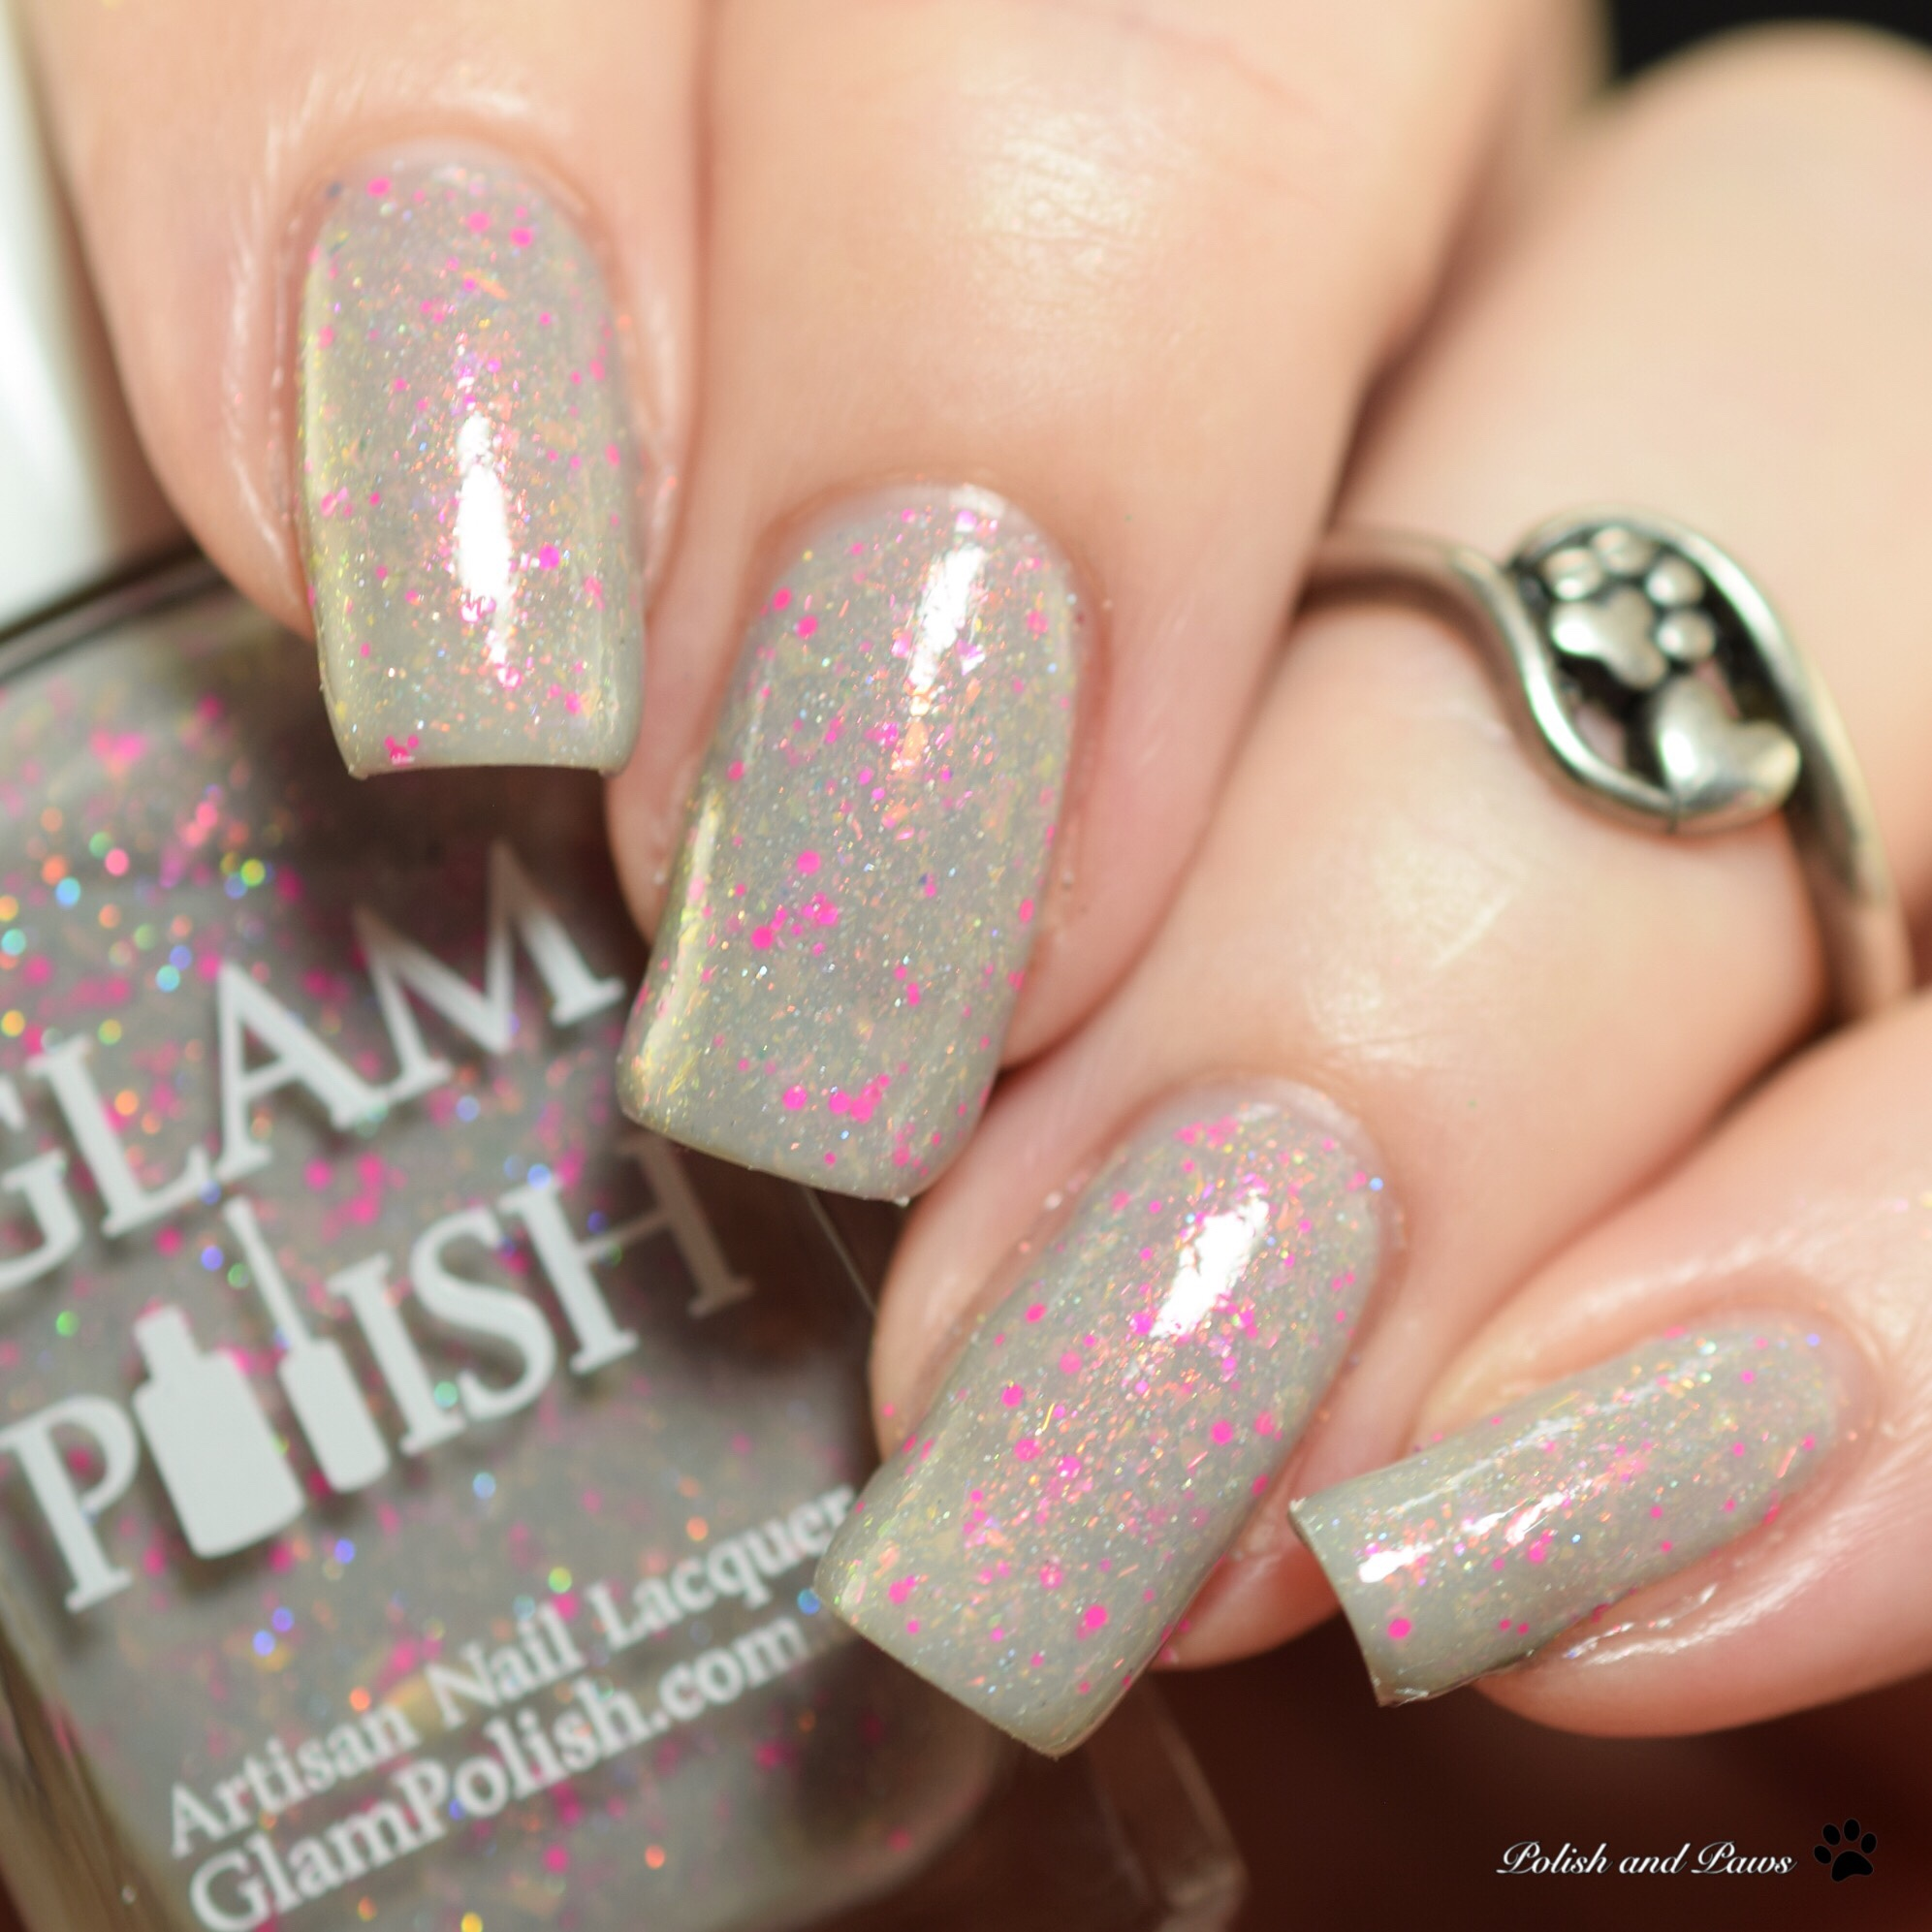 Glam Polish To the Moon and Back